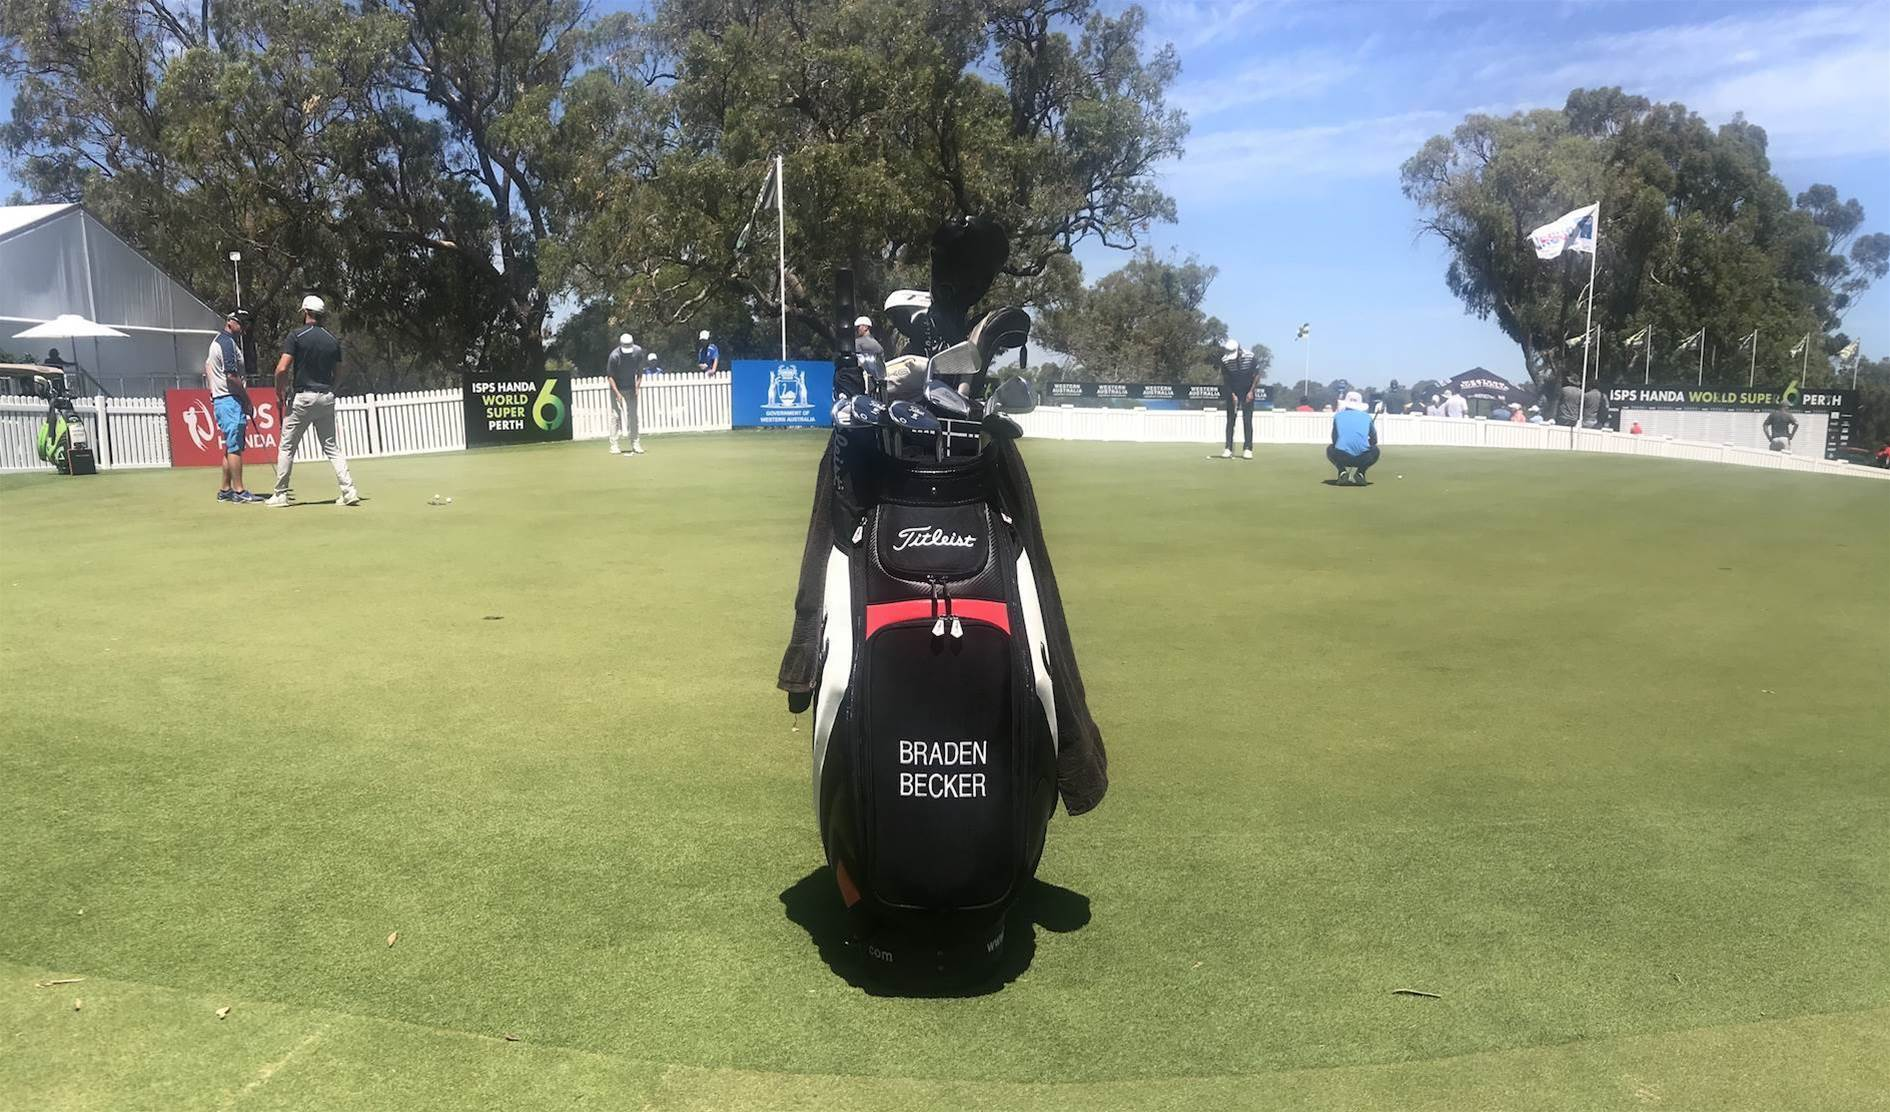 Golf's toughest waiting game